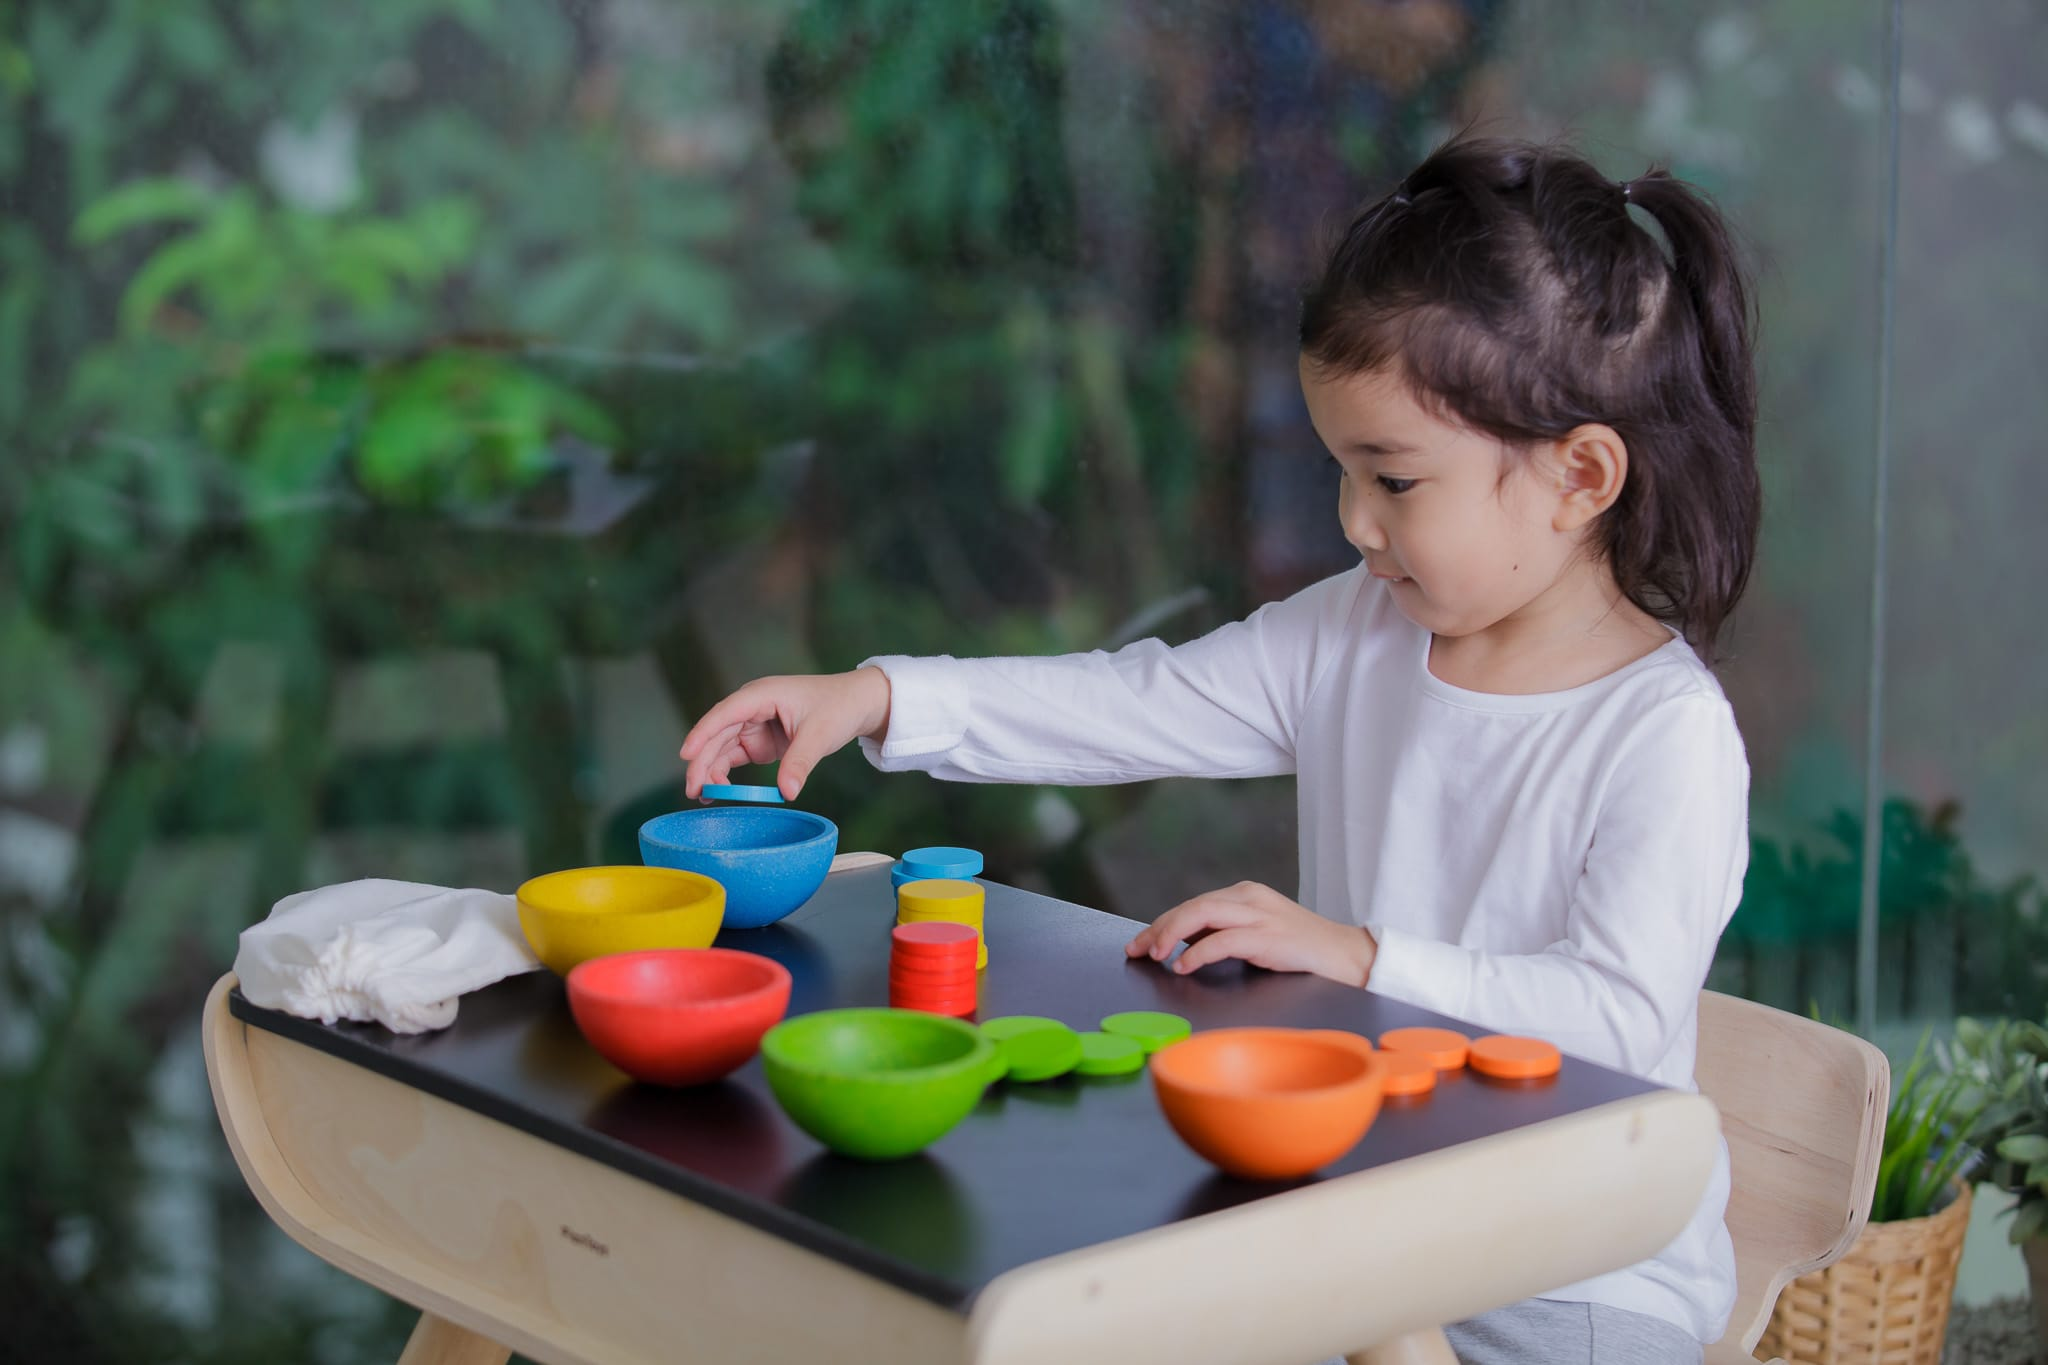 5360_PlanToys_SORT_and_COUNT_CUPS_Learning_and_Education_Mathematical_Fine_Motor_Coordination_18m_Wooden_toys_Education_toys_Safety_Toys_Non-toxic_1.jpg